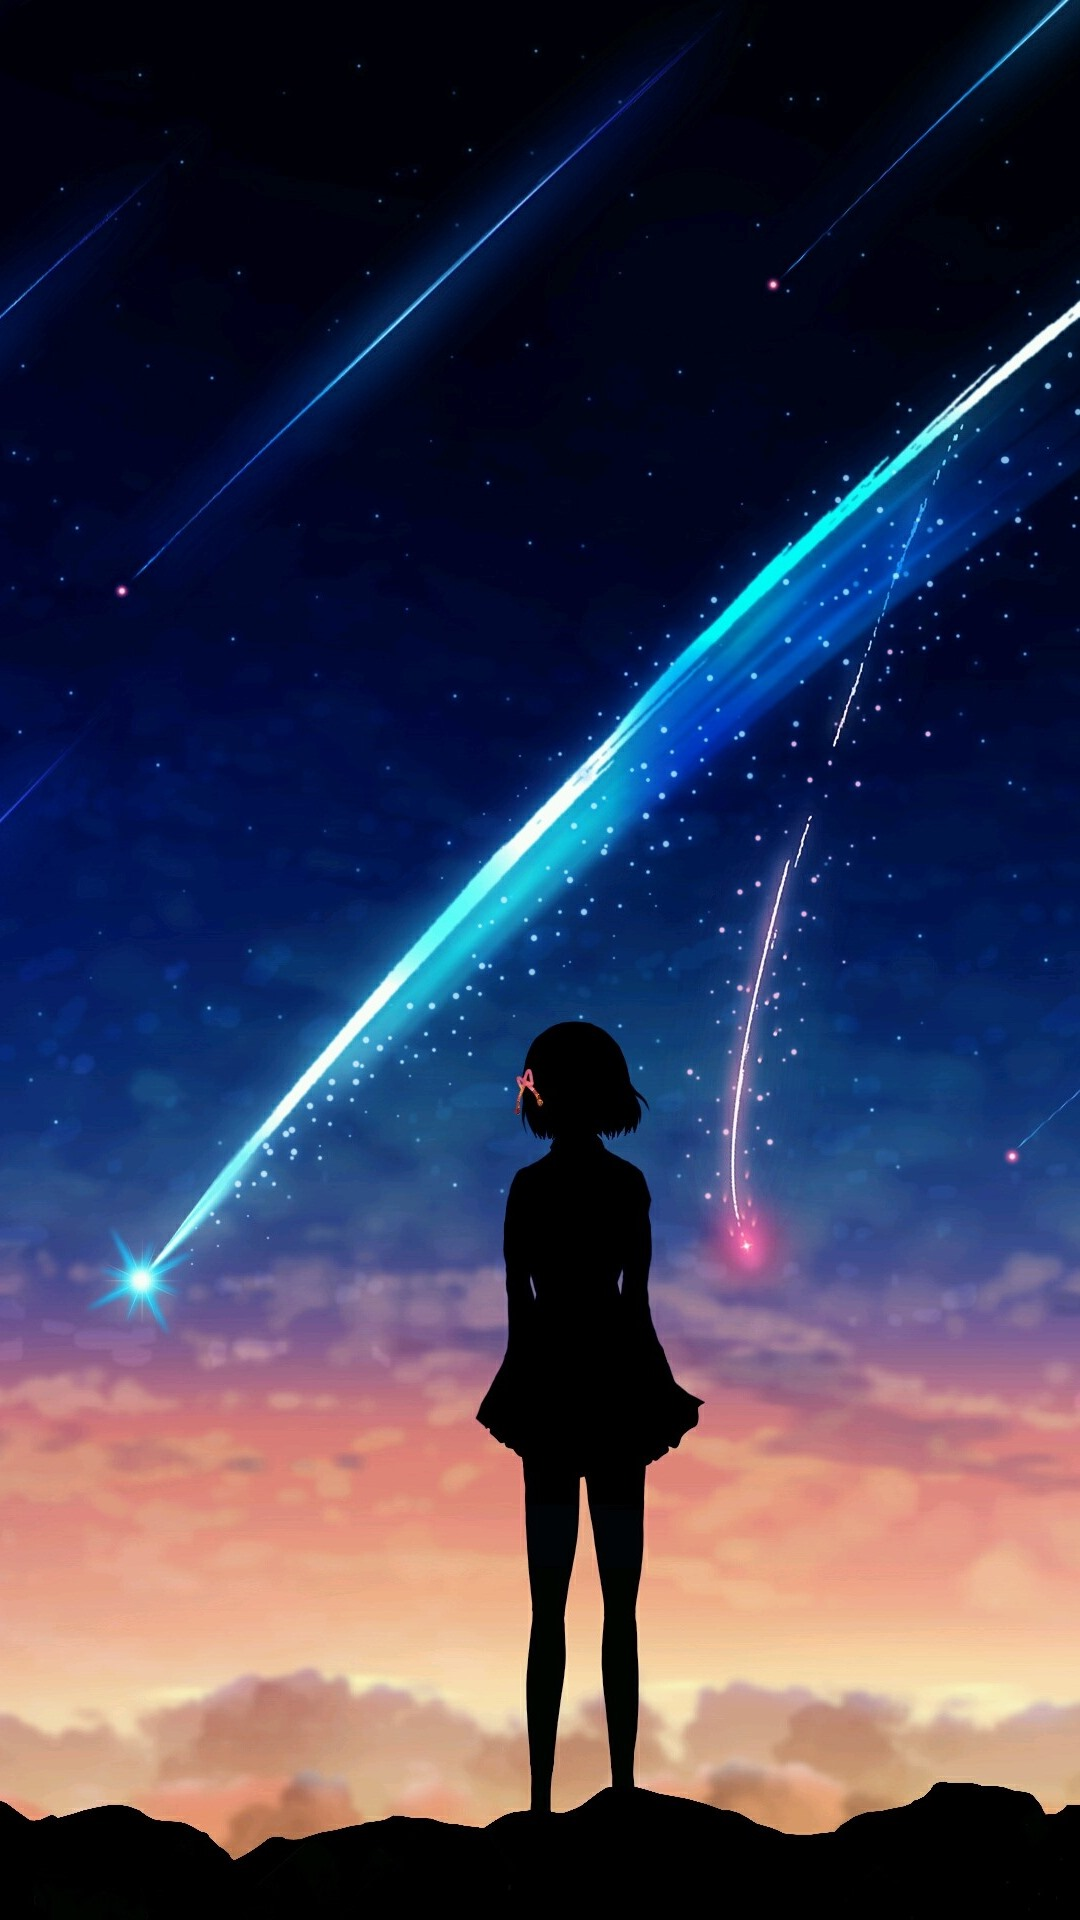 Your Name Wallpaper Iphone Xr : wallpaper, iphone, Pengetahuan, Anime, Iphone, Wallpaper